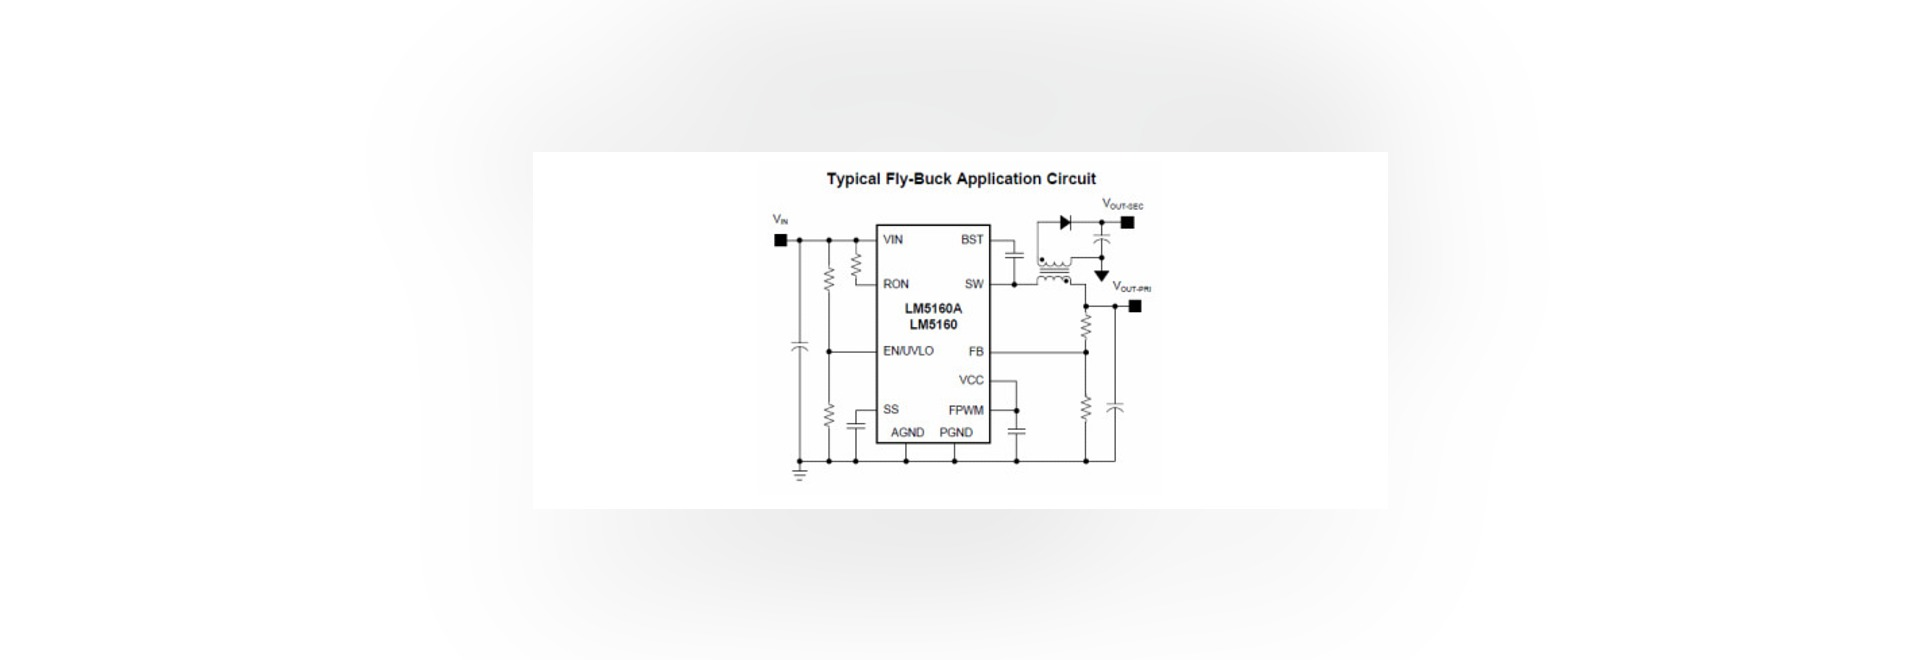 Positive And Negative Isolated Power Rails For Igbt Gate Drivers Motor Drive Circuit Diagram High Wiring